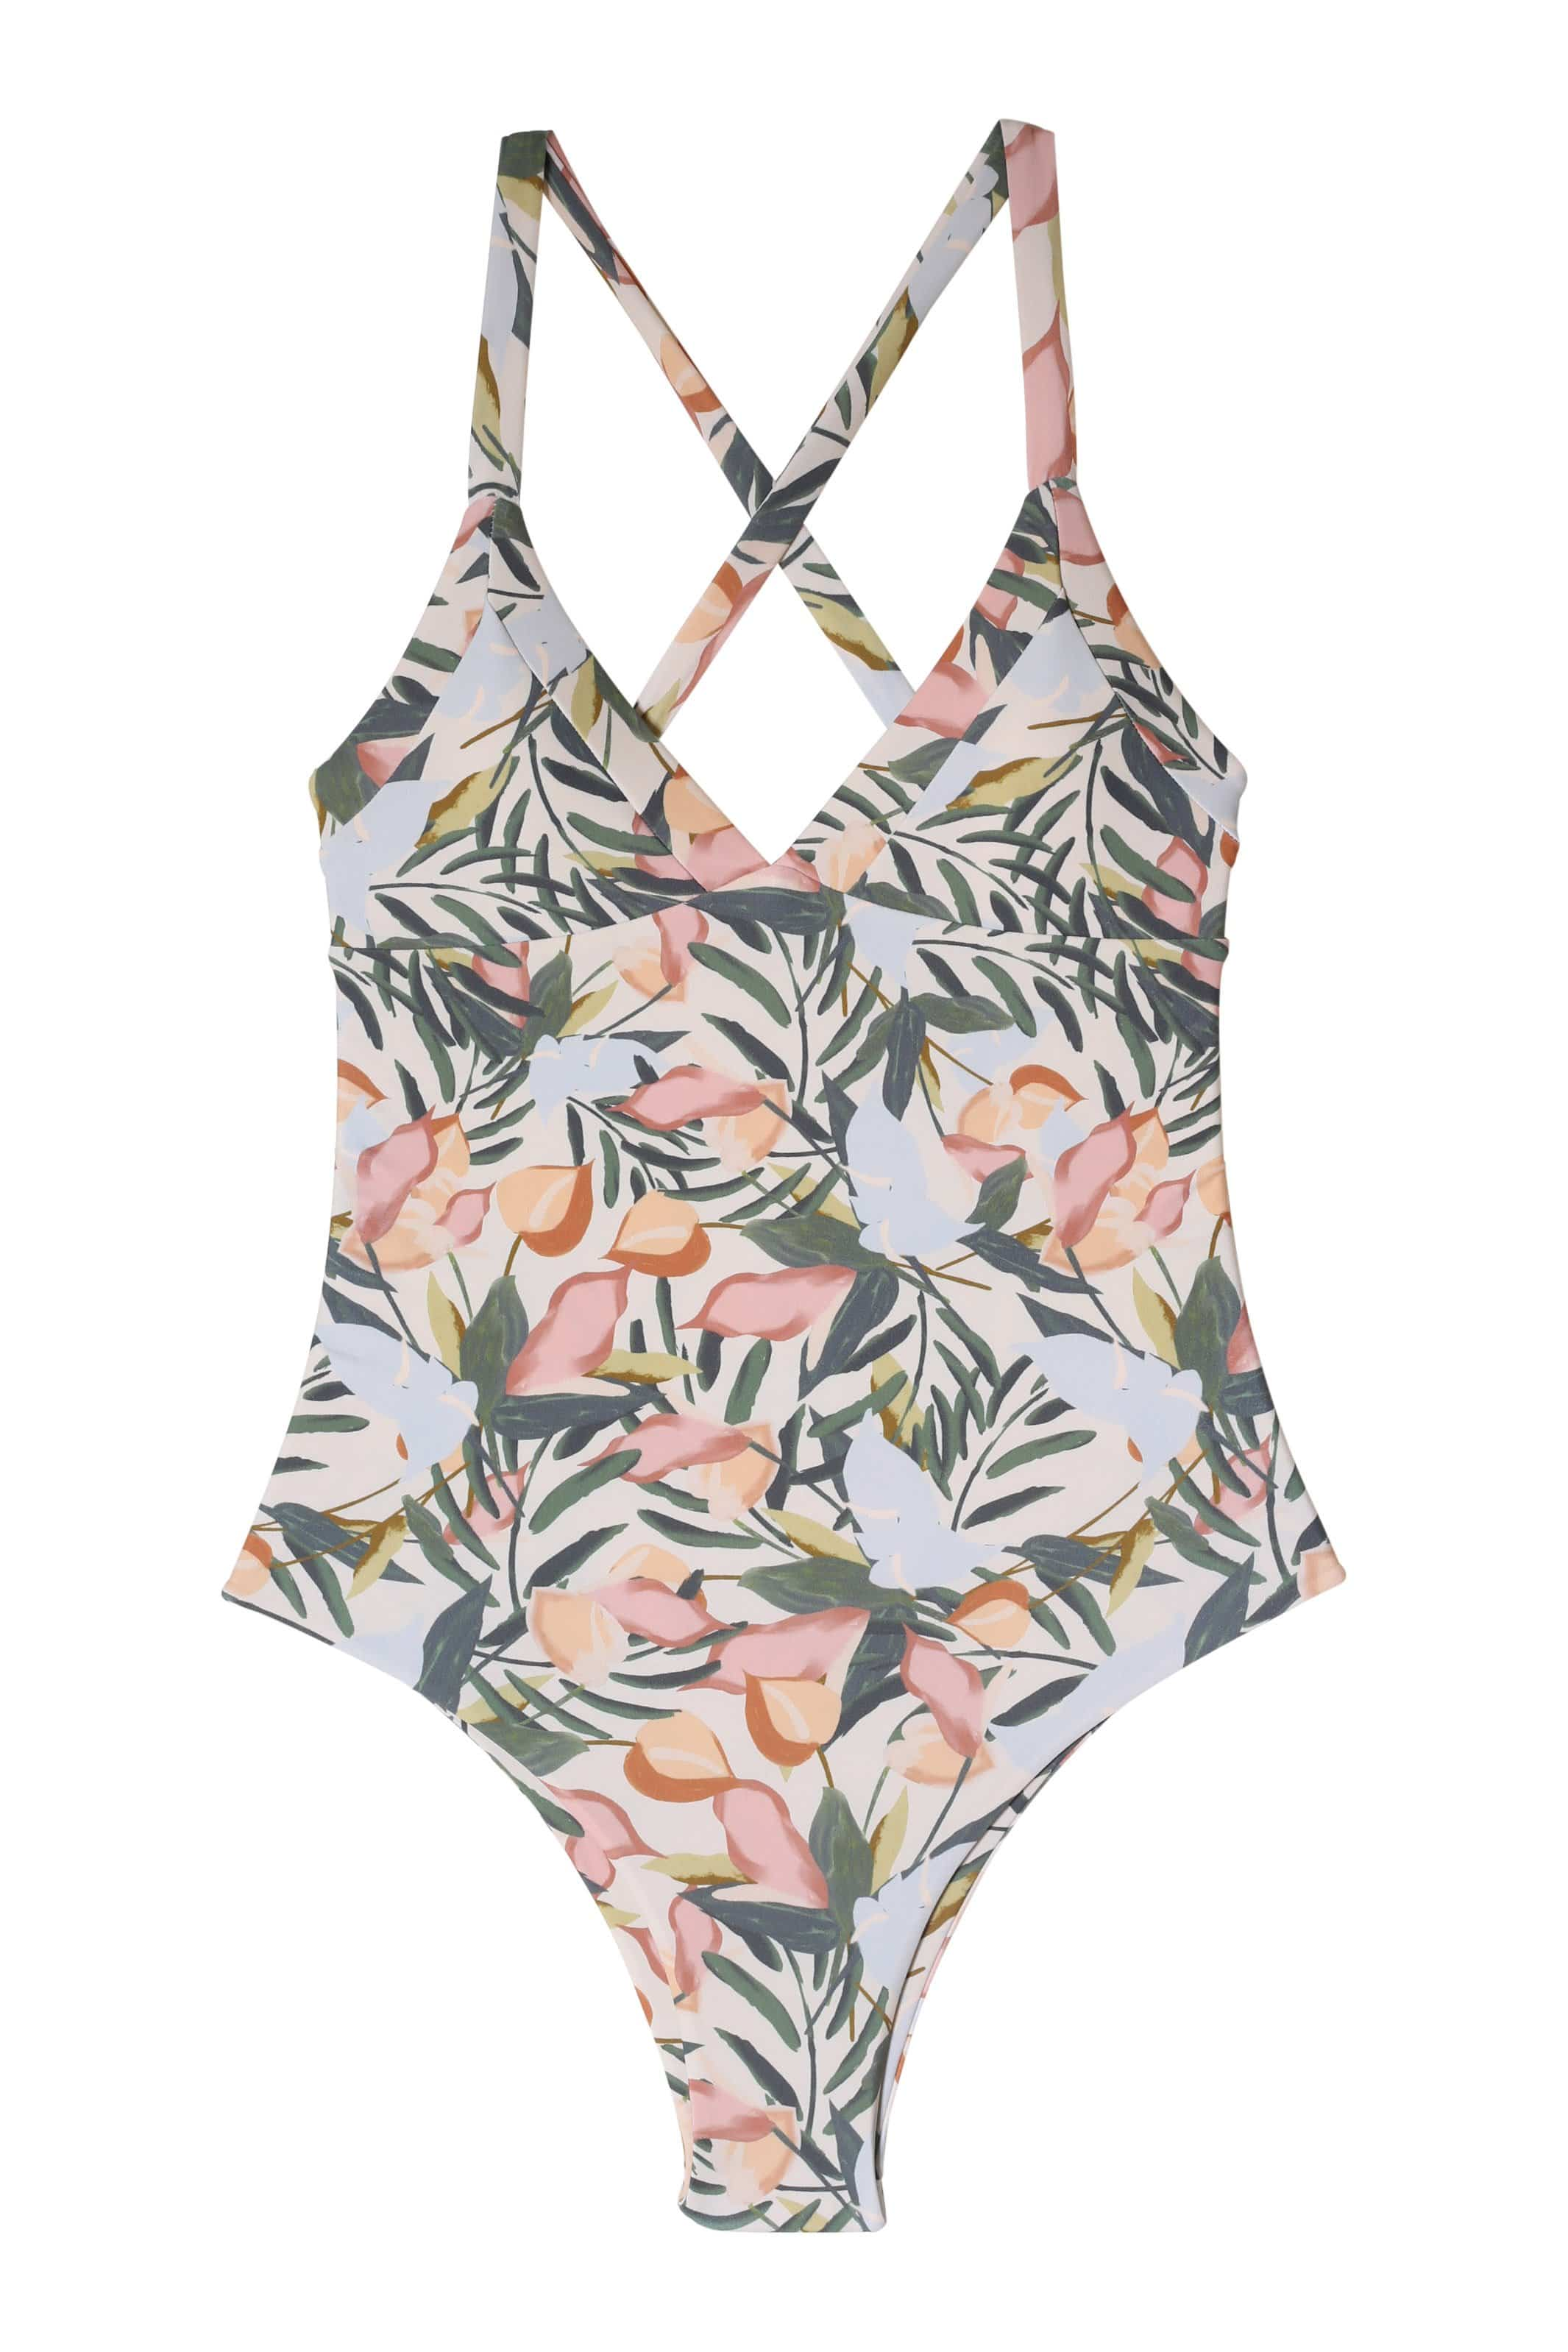 Sale Kailua One Piece Cheeky Coverage Vintage Floral